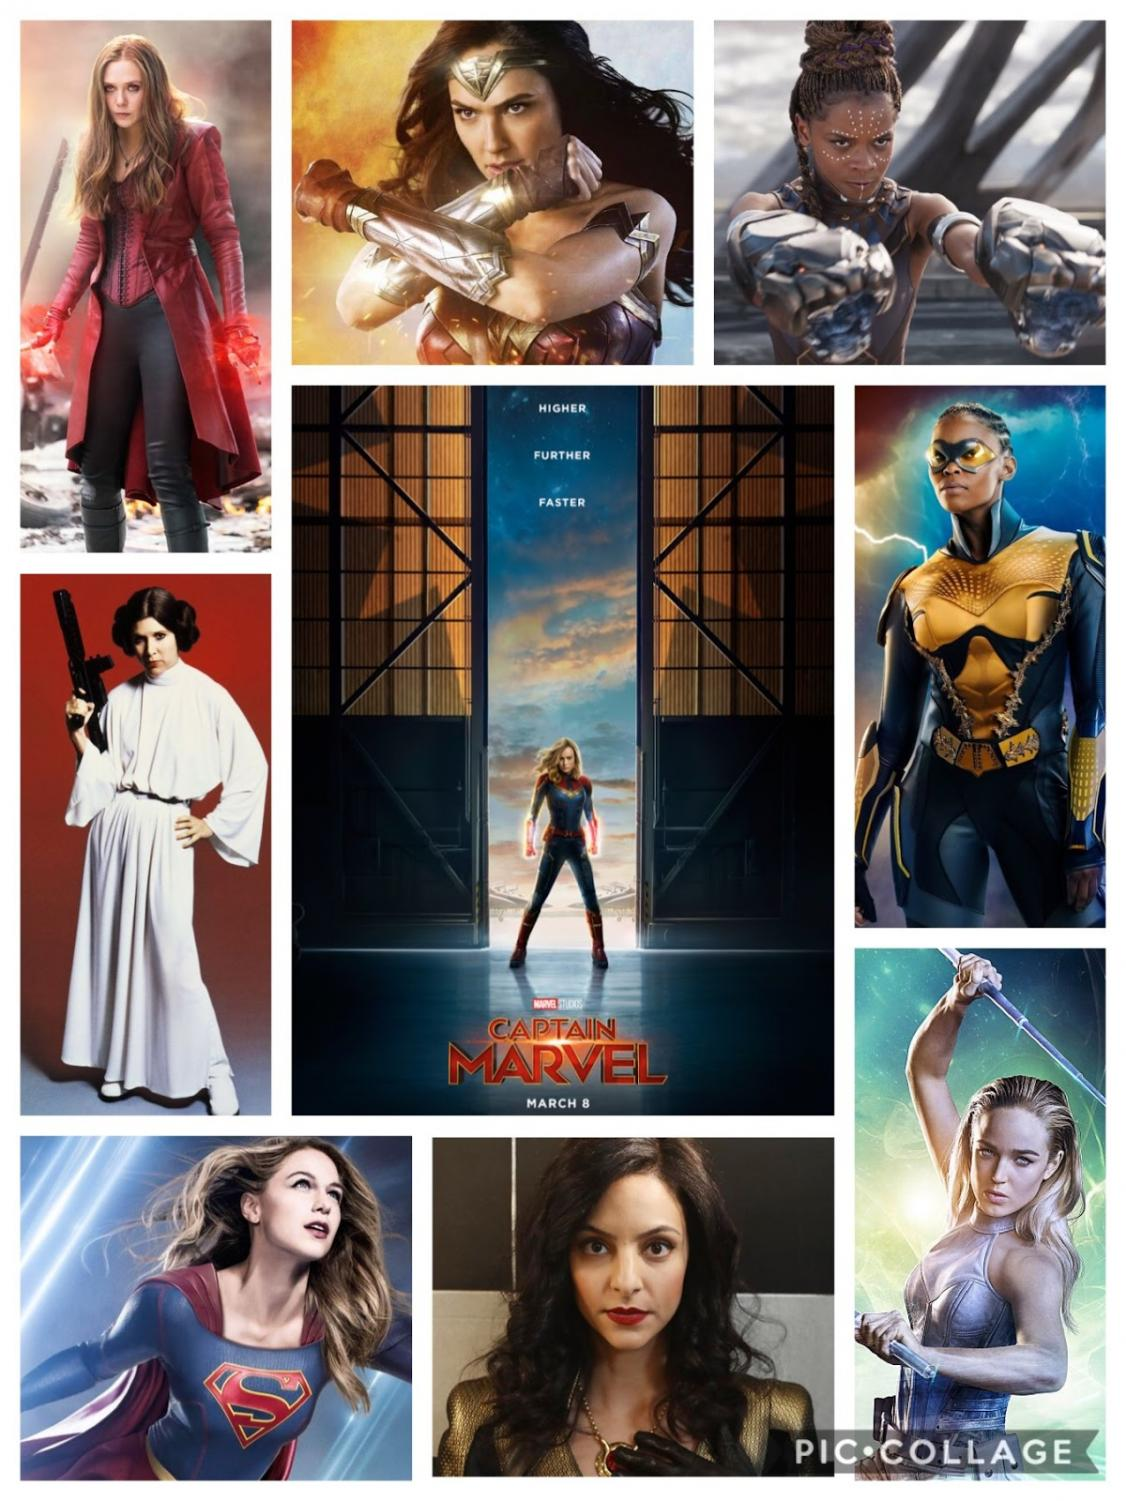 From Marvel to DC to Star Wars, female superheroes are becoming more and more prominent throughout the entertainment industry. Photo Credits: Marvel Studios, The CW, RealStyle Network, BBC